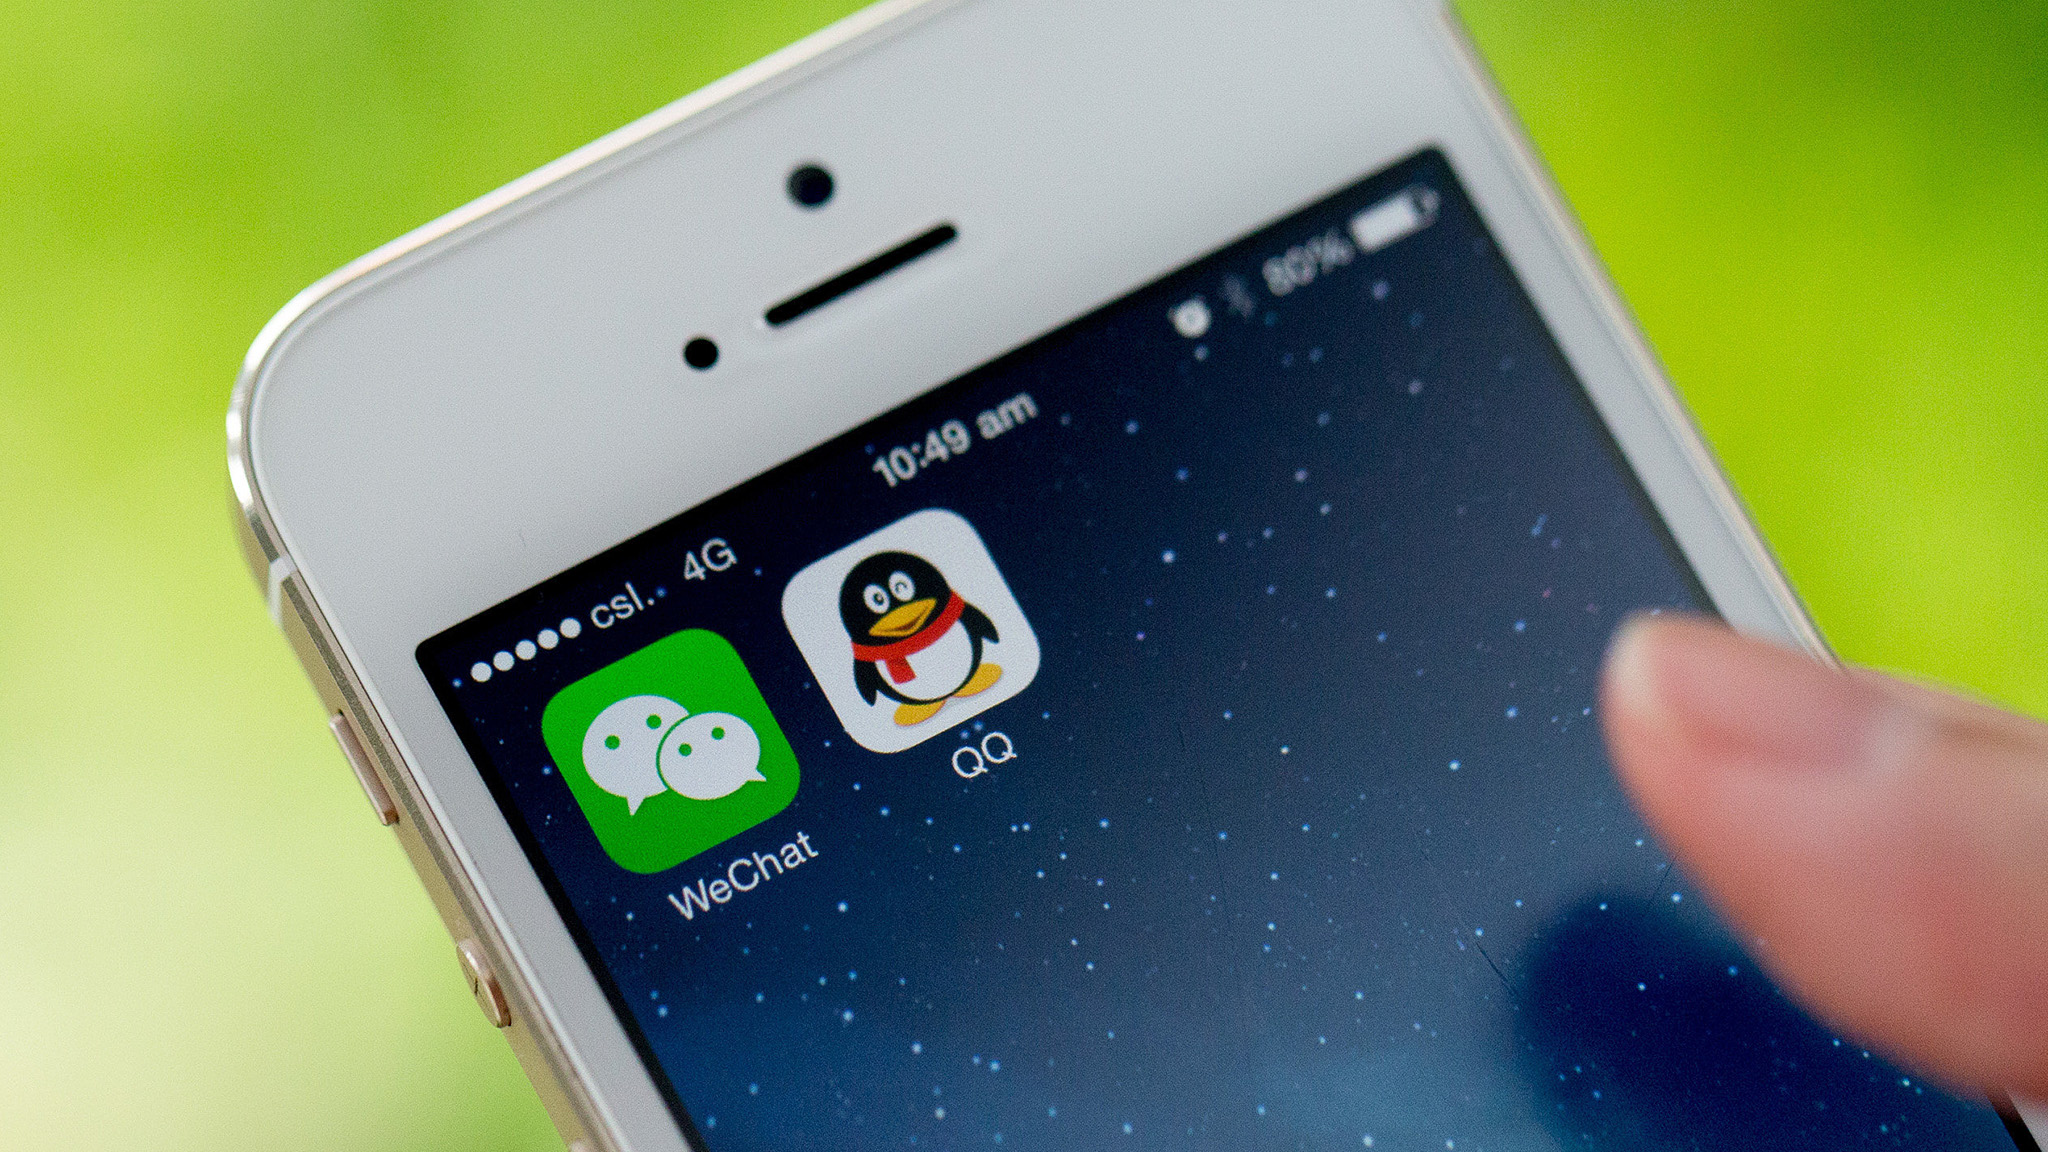 Watch brands turn to WeChat to woo Chinese consumers